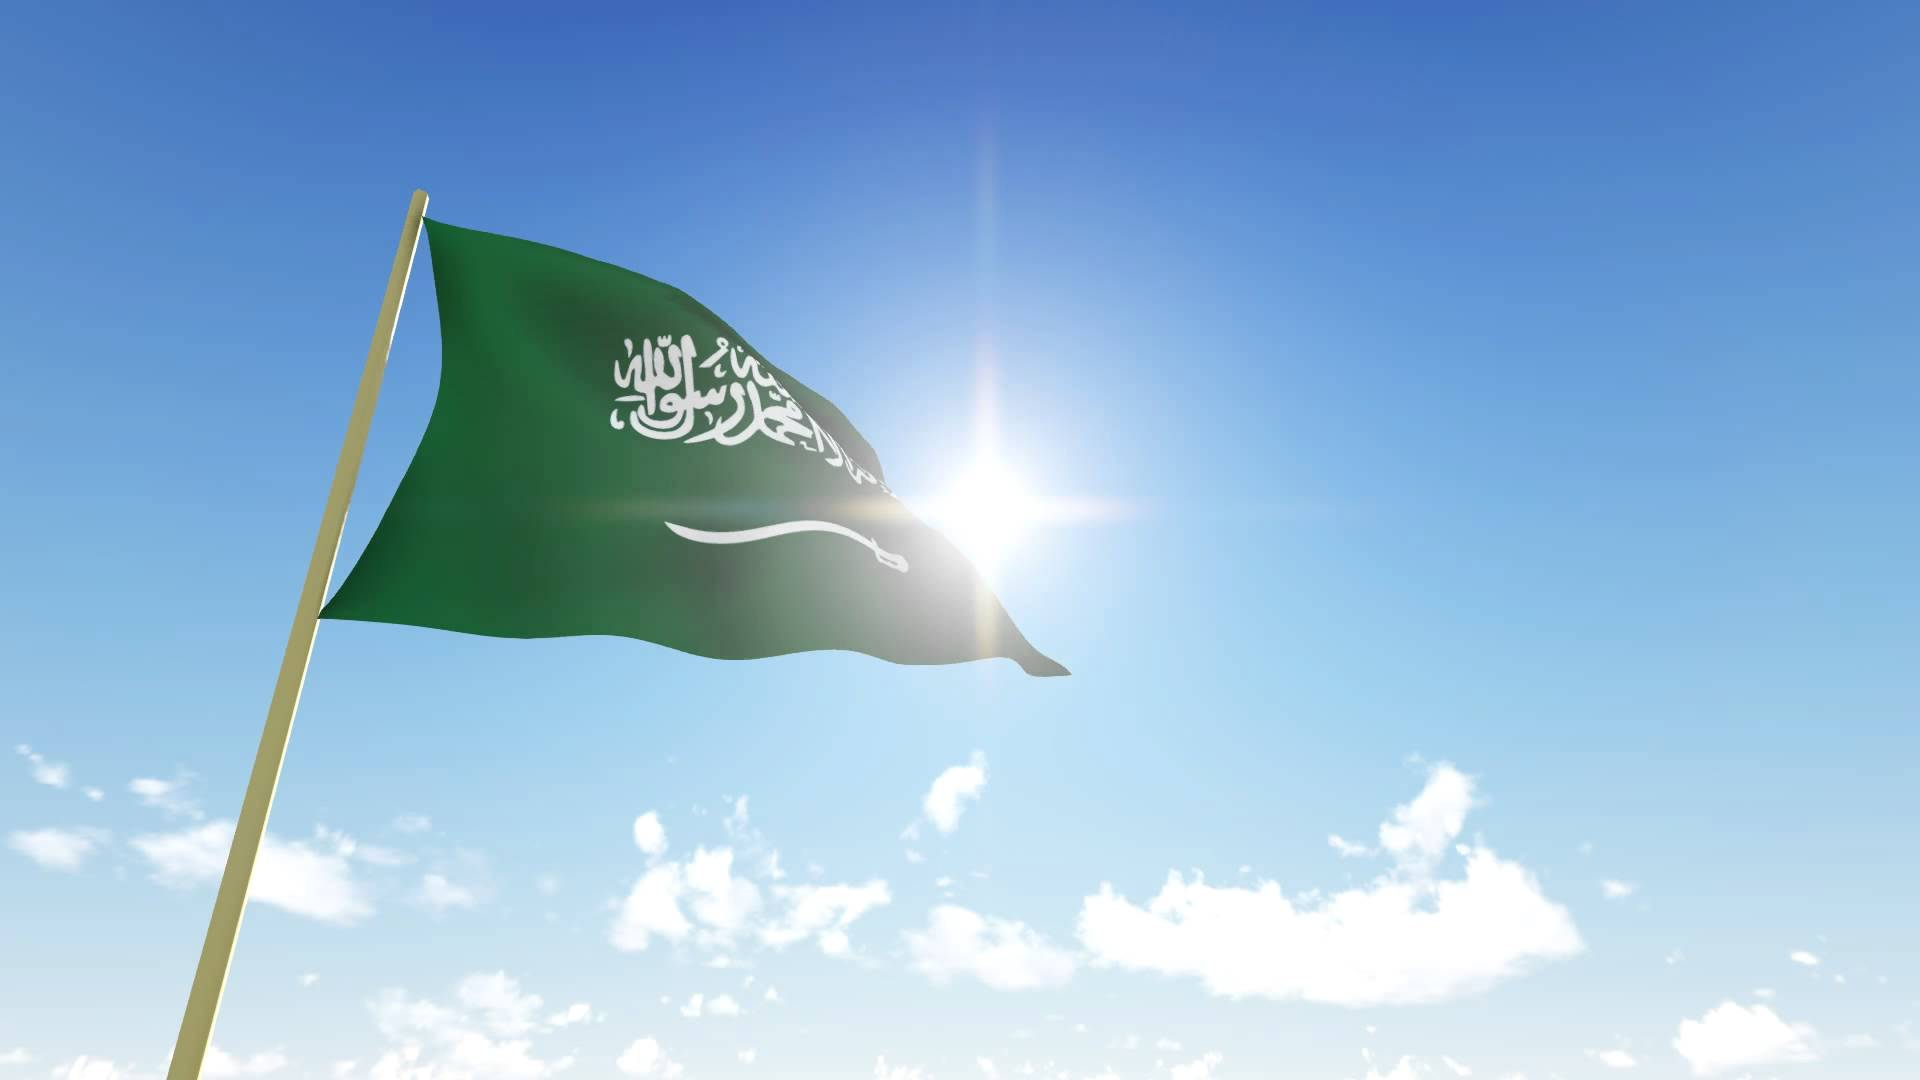 Flag Of Saudi Arabia Backgrounds, Compatible - PC, Mobile, Gadgets| 1920x1080 px